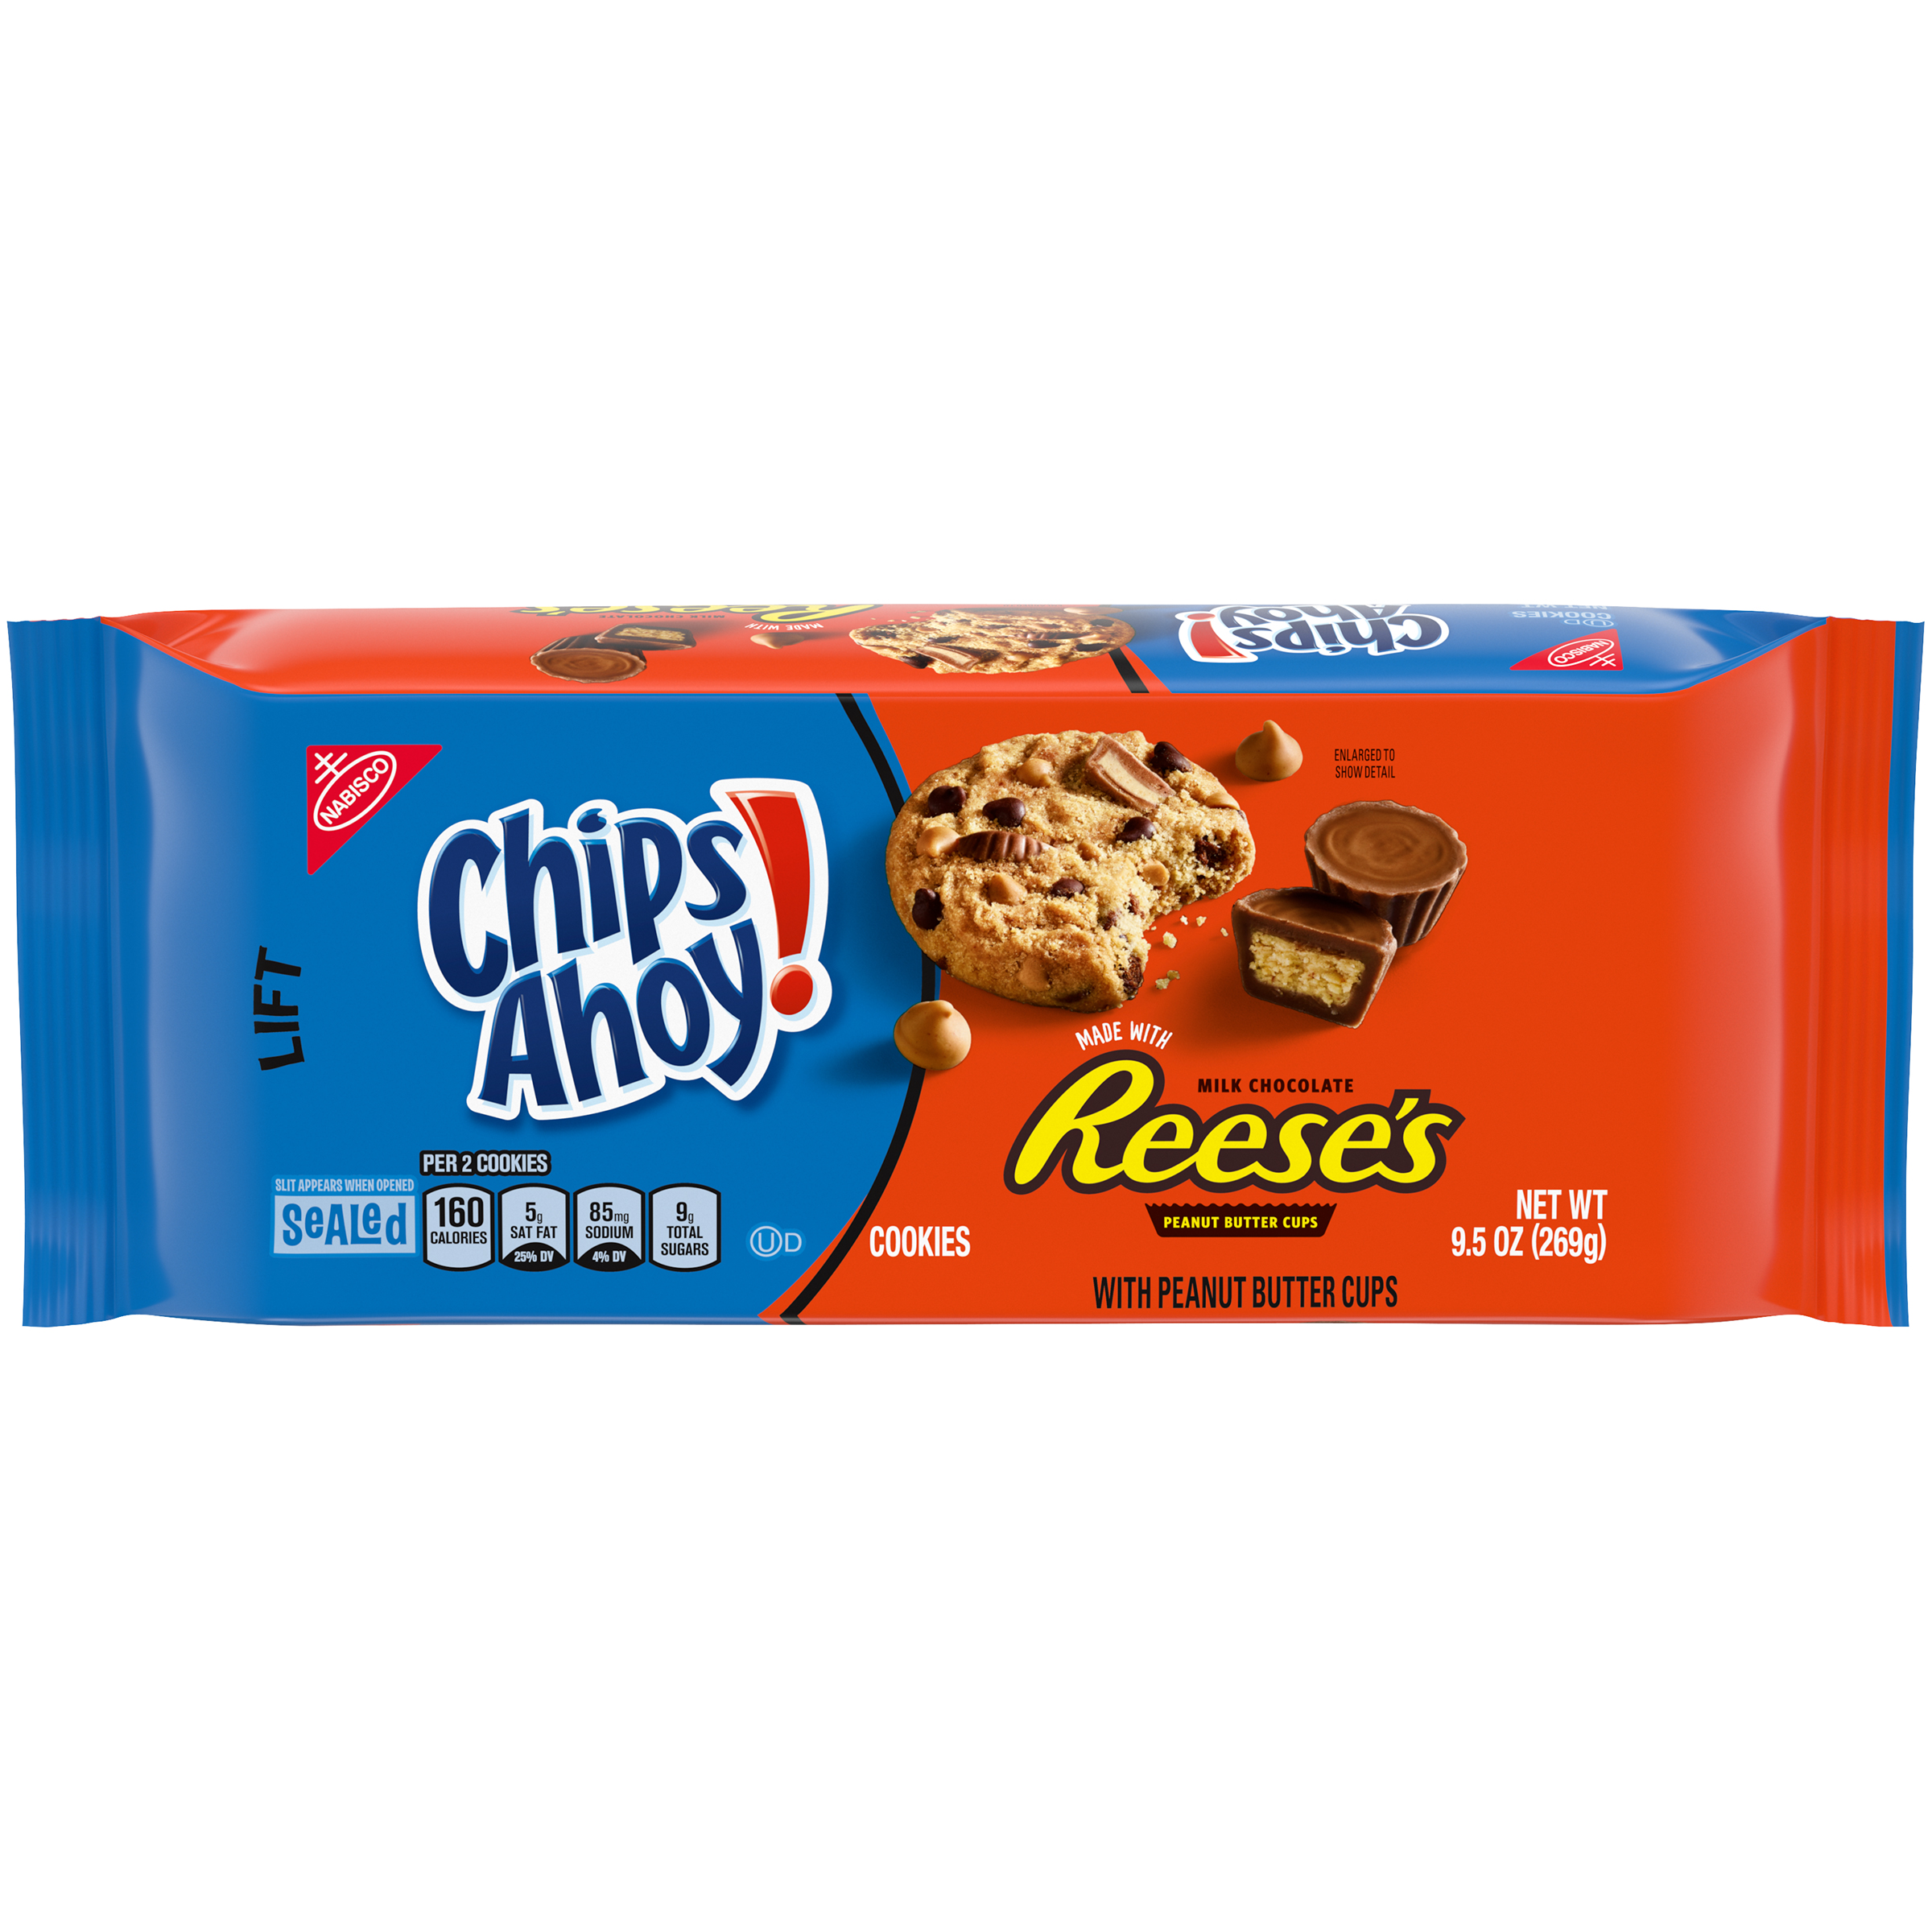 CHIPS AHOY! Reese'S Peanut Butter Cookies 9.5 oz